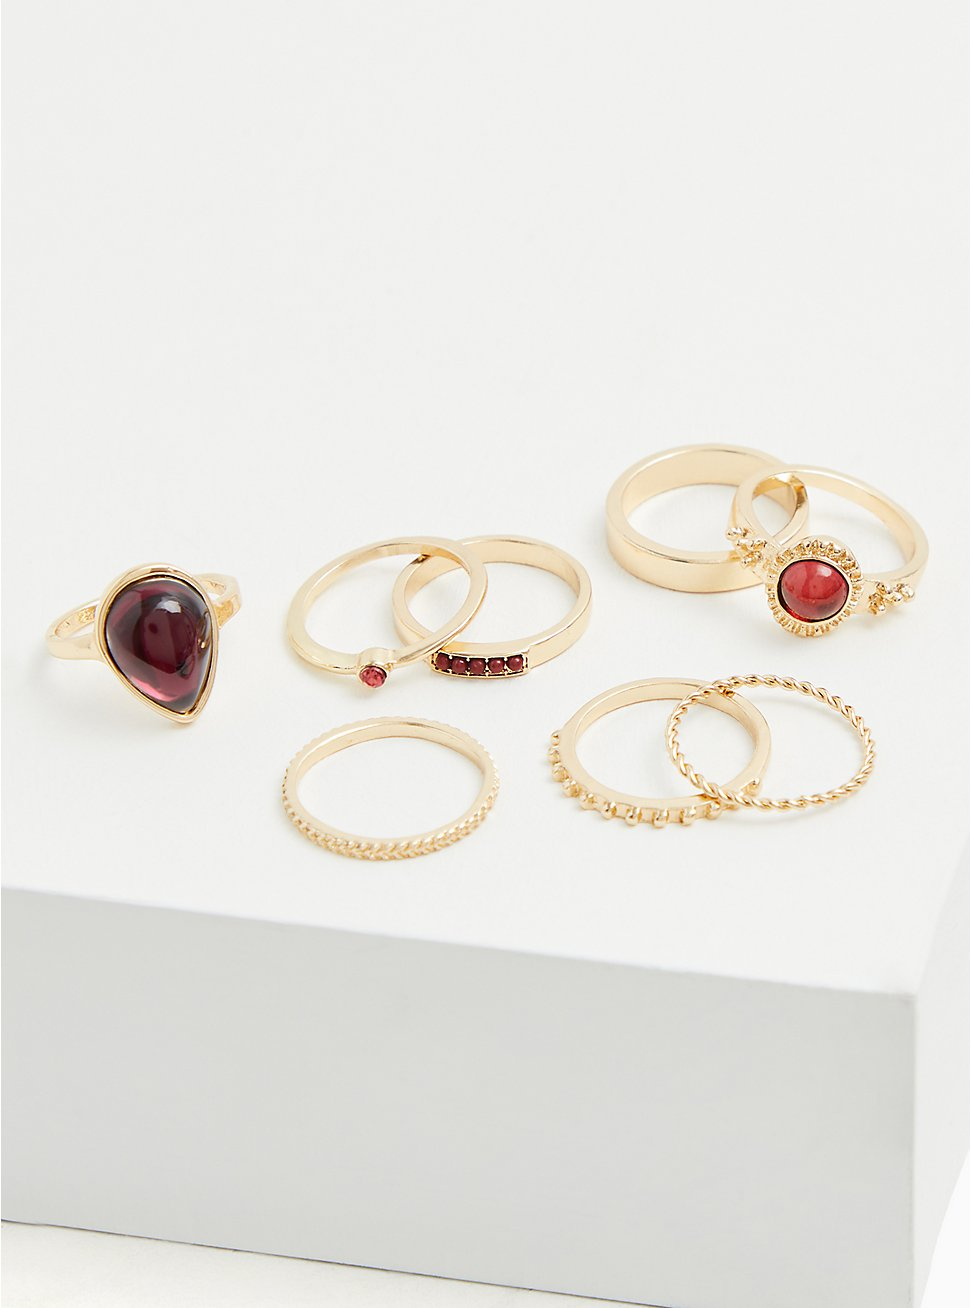 Gold-Tone Faux Ruby Stone Ring Set - Set of 8, GOLD, hi-res